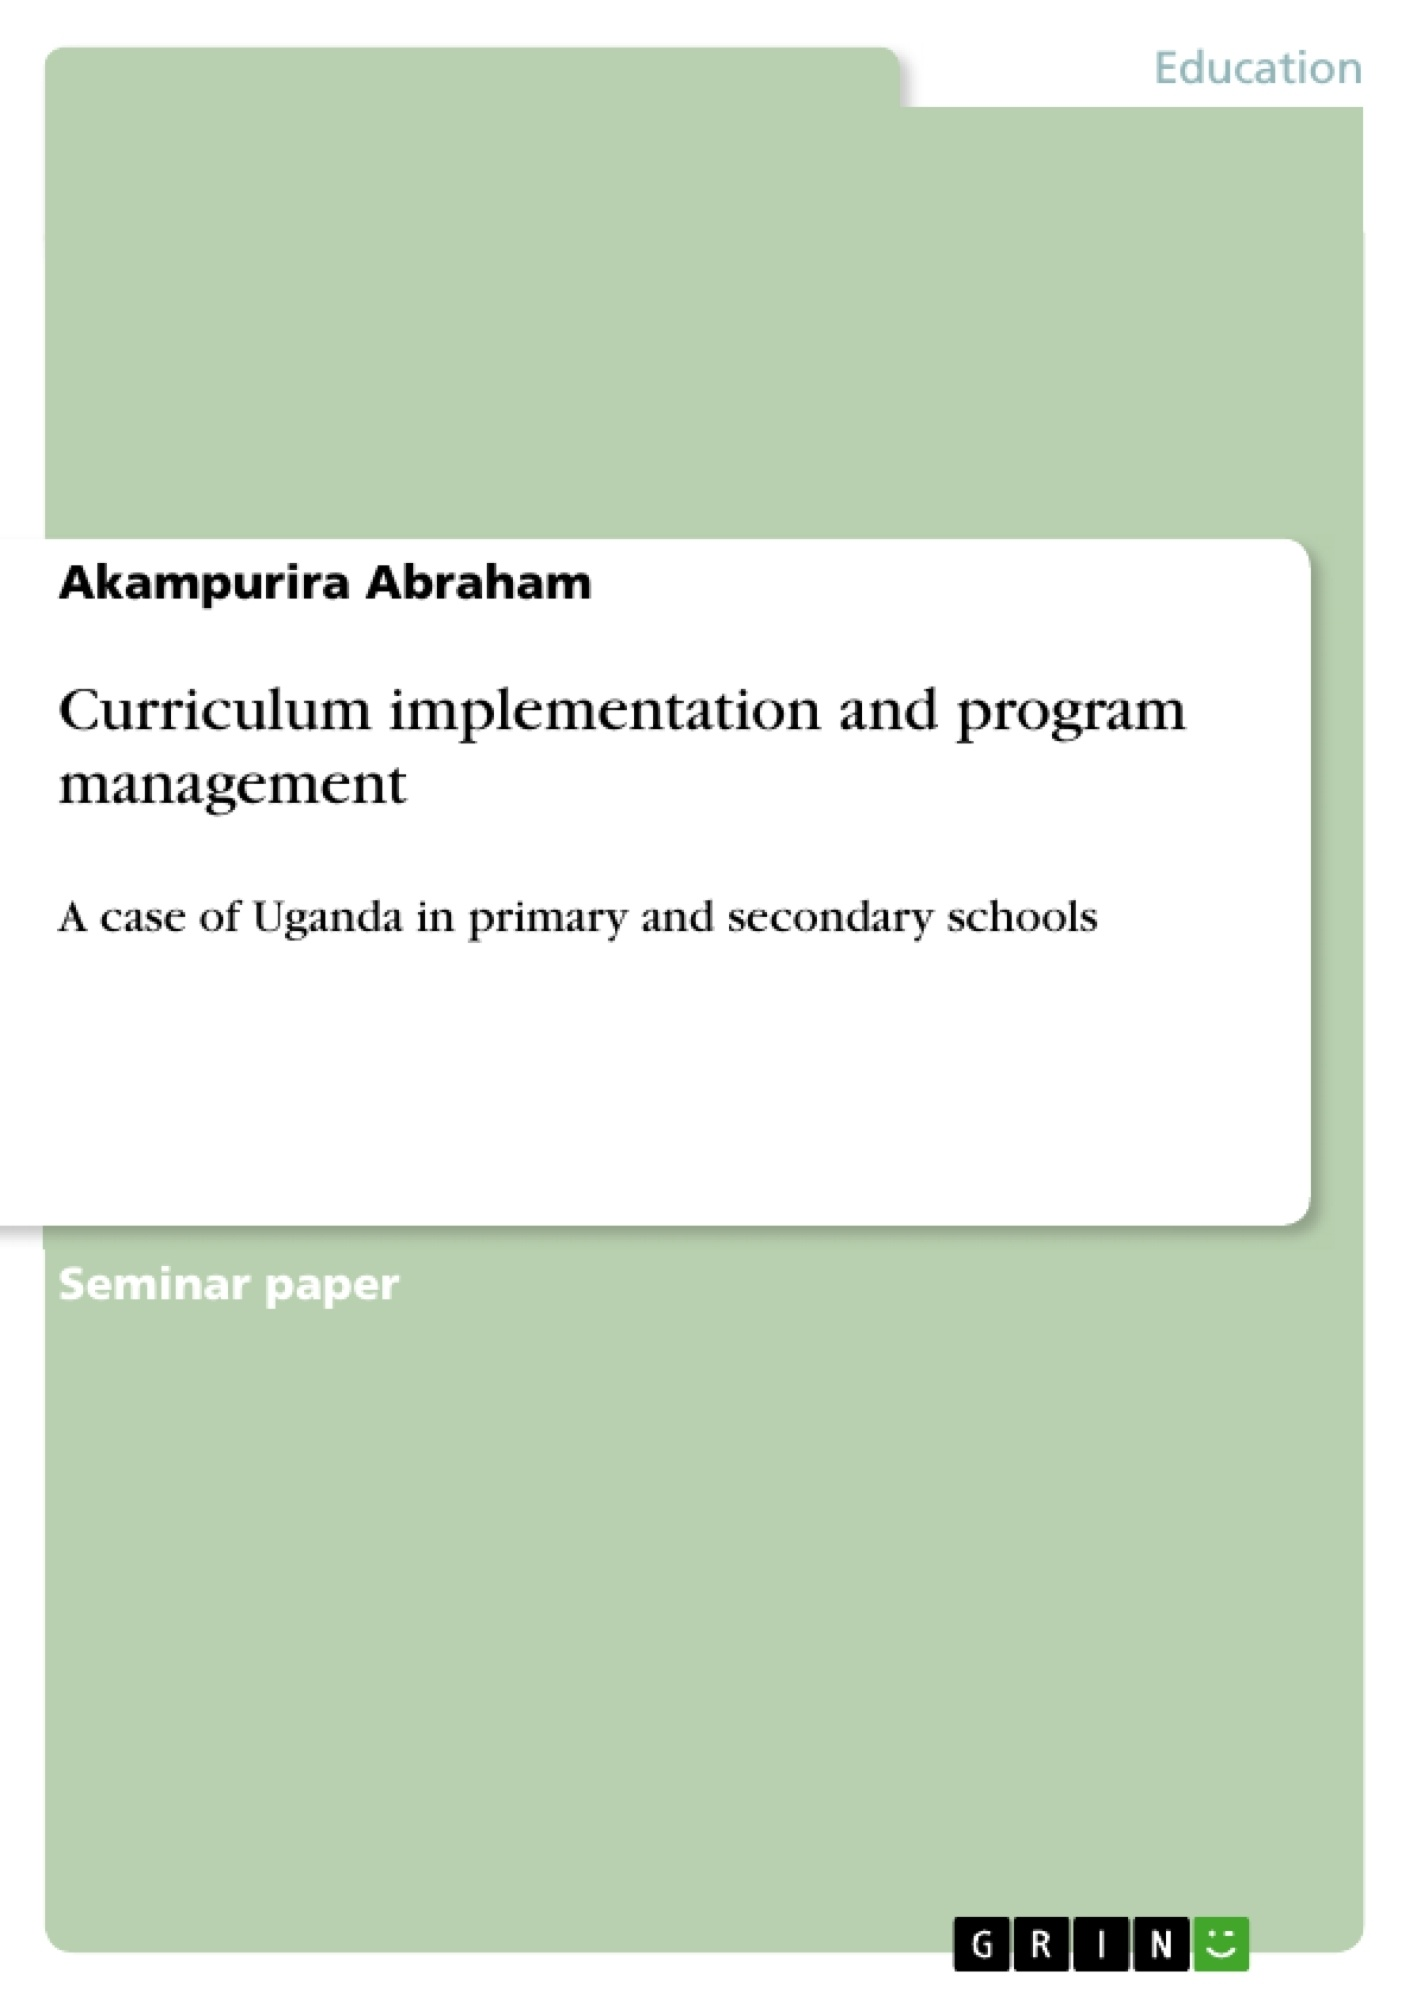 Curriculum implementation and program management publish your curriculum implementation and program management publish your masters thesis bachelors thesis essay or term paper fandeluxe Choice Image